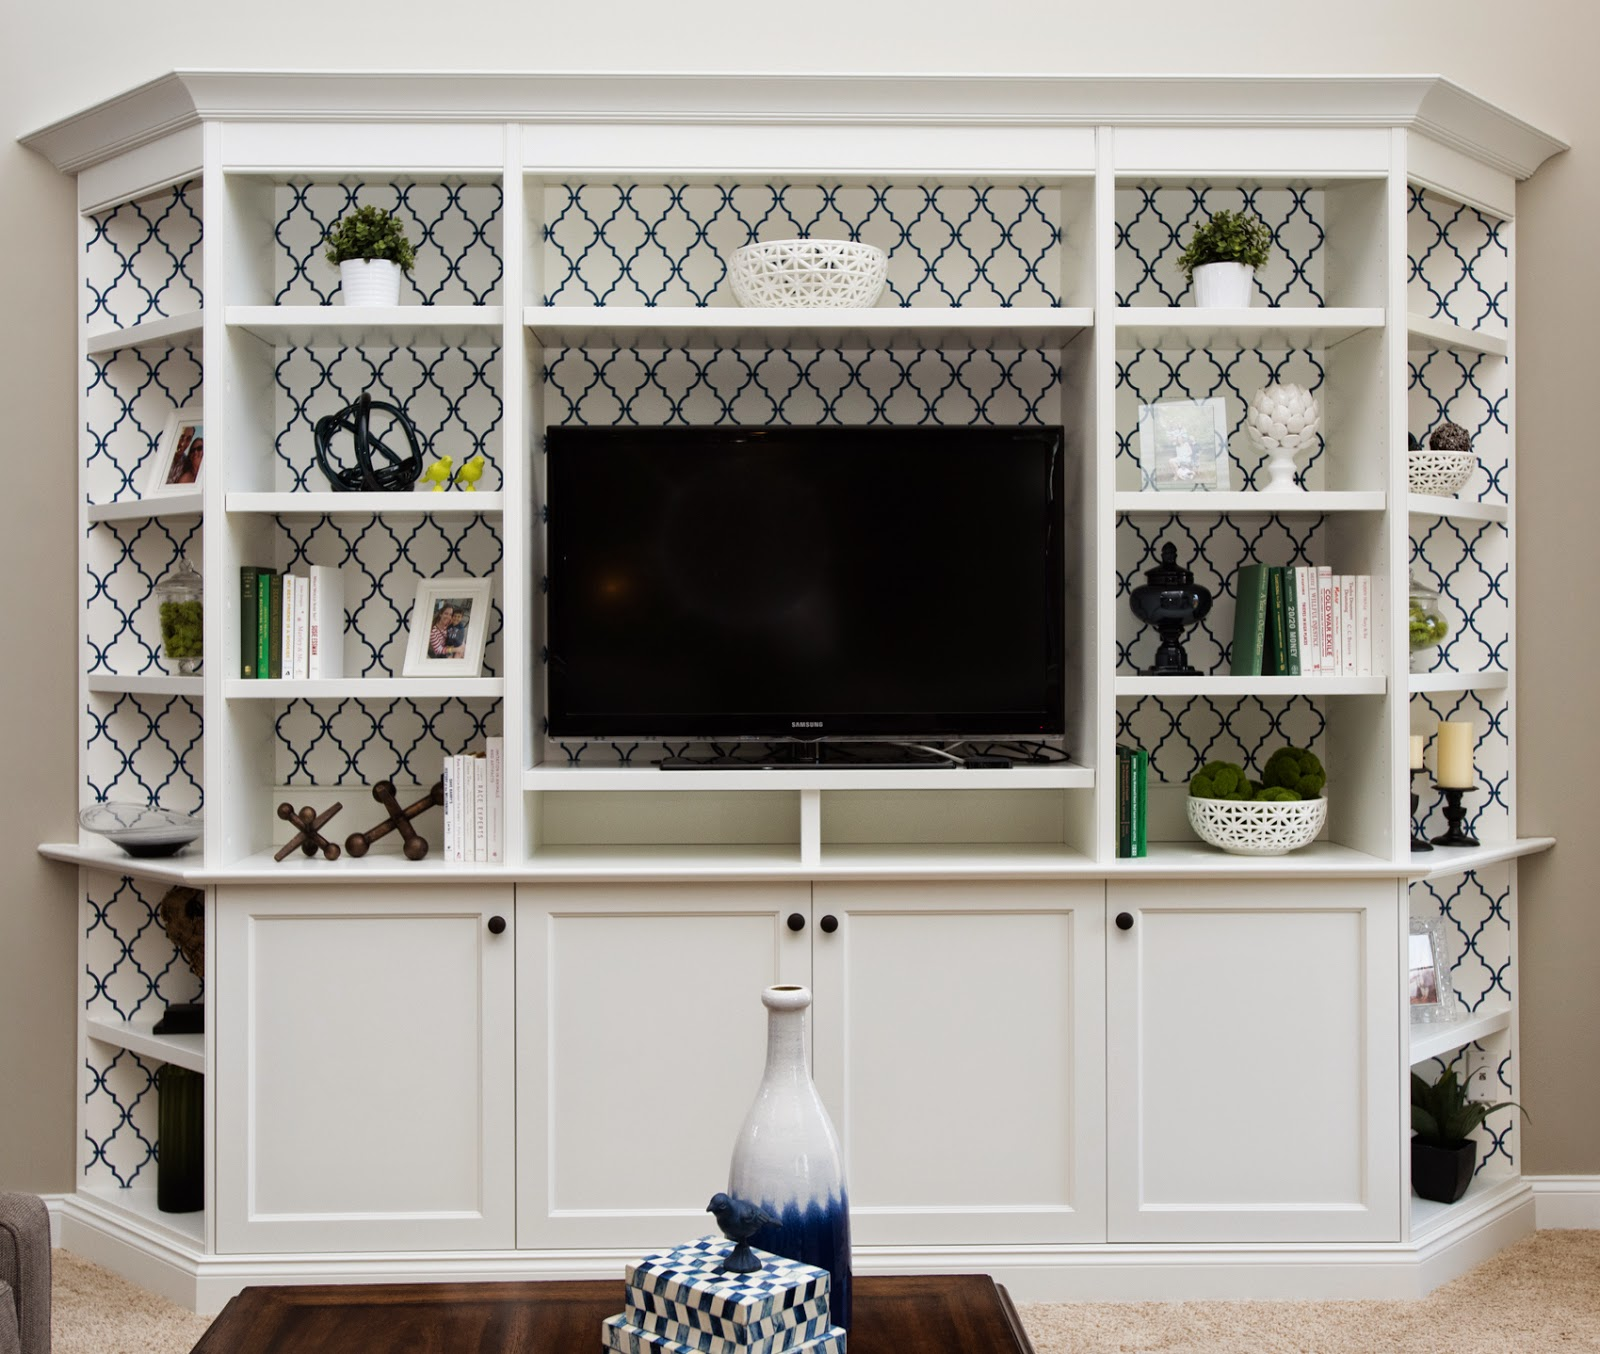 Built-in Bookcase Makeover And Tips